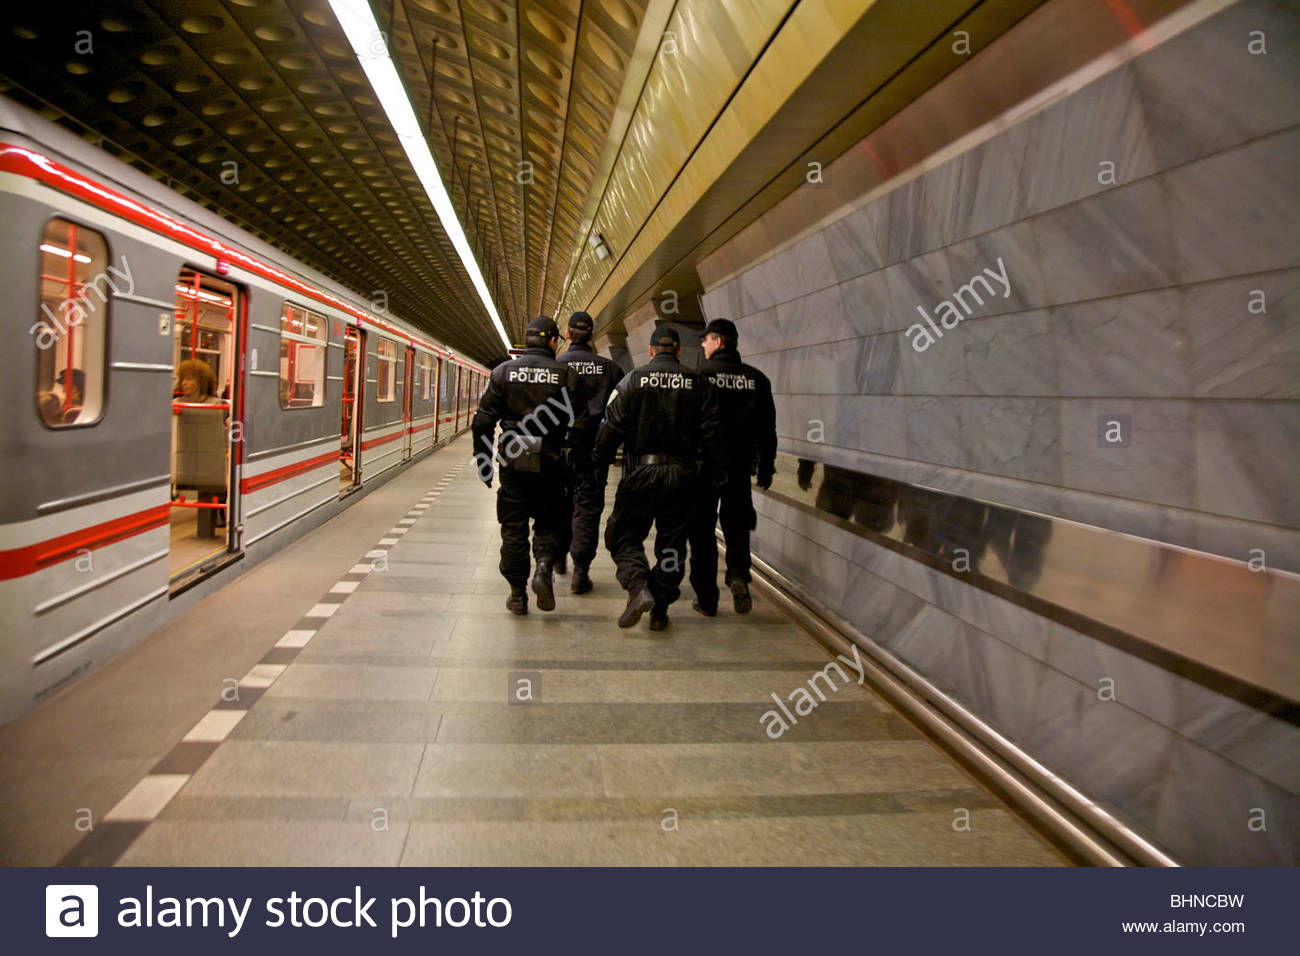 Prague Police in Metro Station, Praha, Czech Republic. - Stock Image